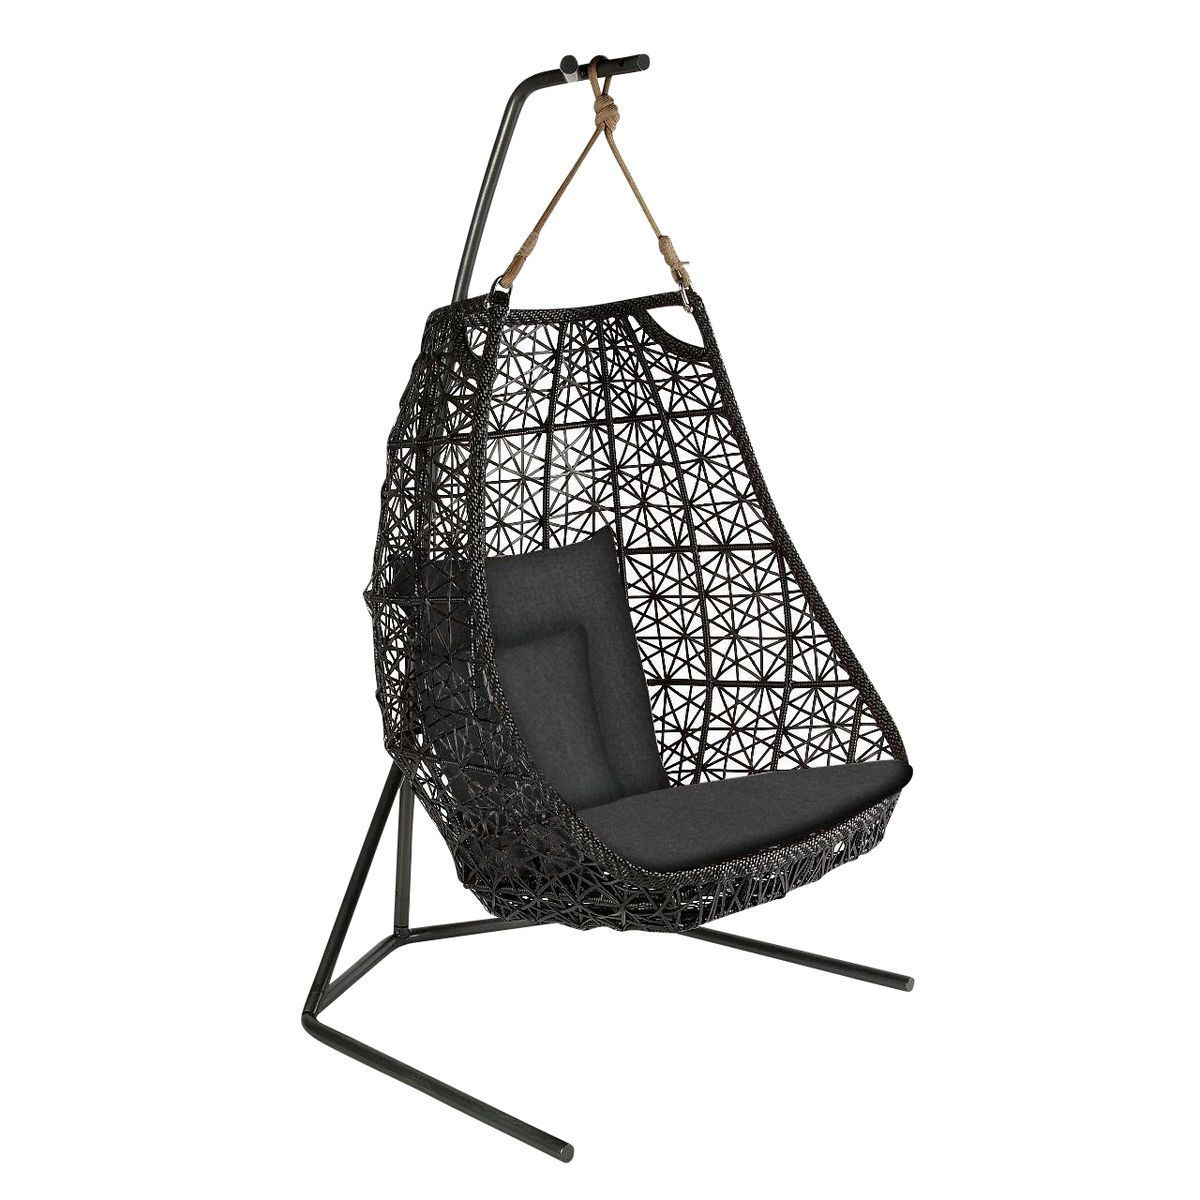 Egg Swing Chair Maia Egg Swing Hanging Chair Kettal Ambientedirect